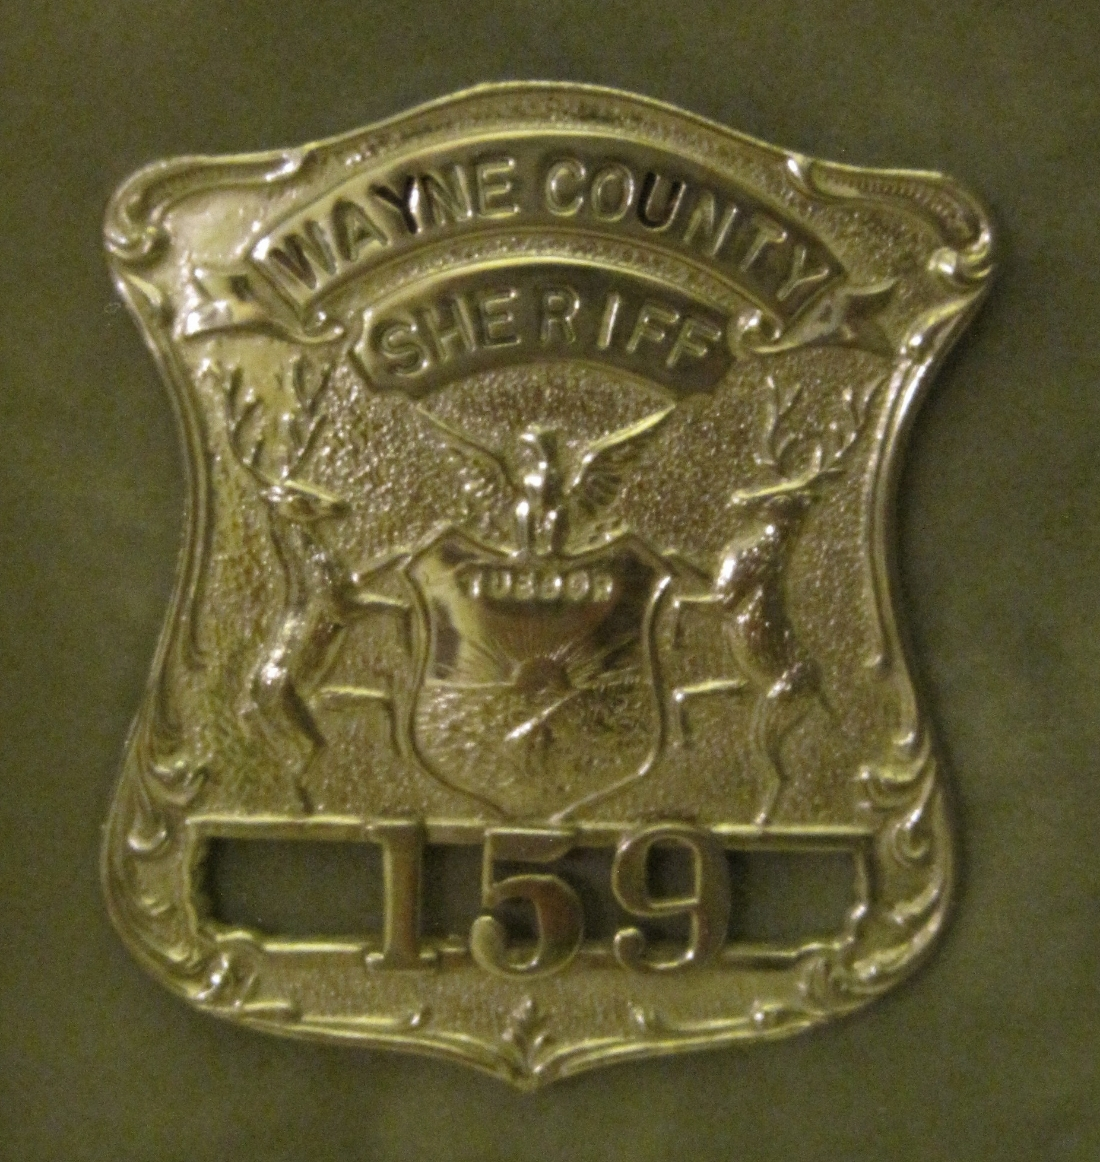 Wayne County Sheriff Department